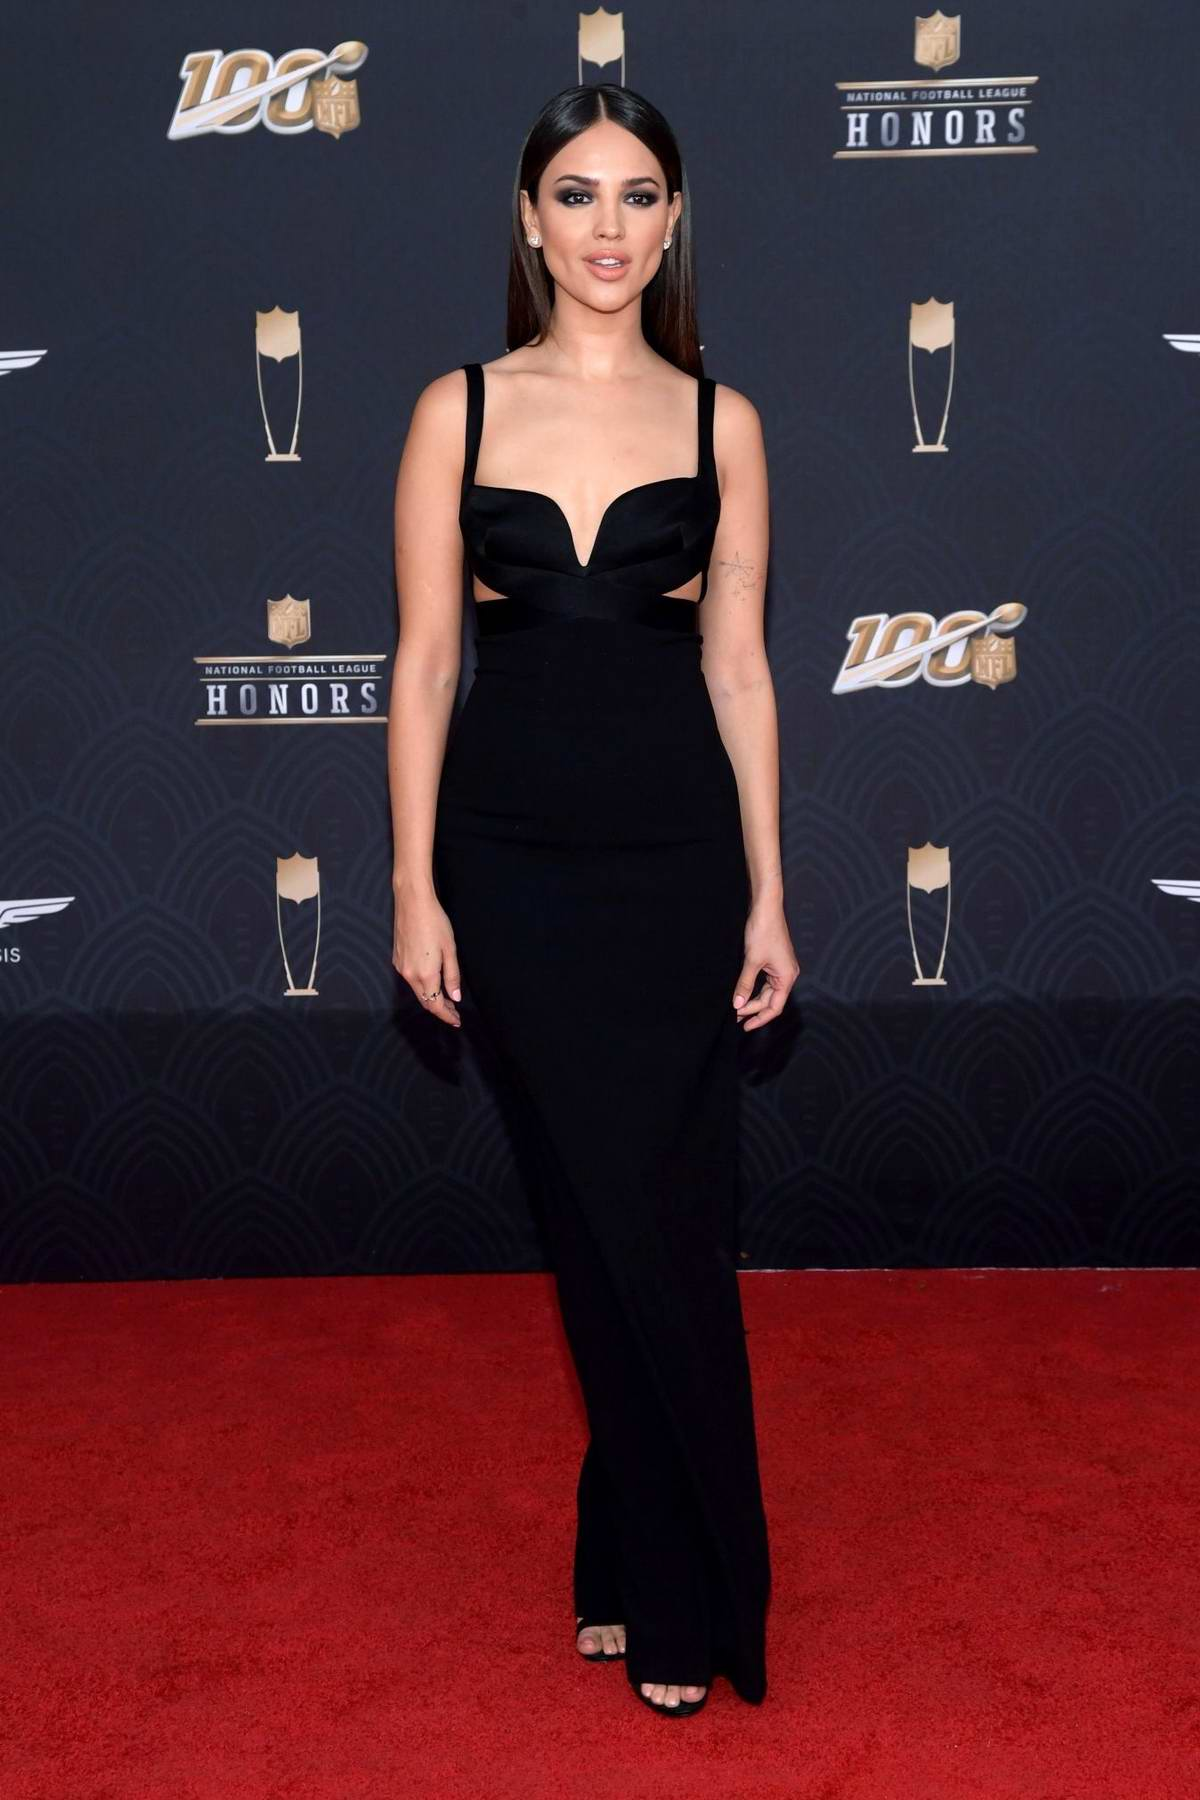 Eiza Gonzalez attends the 9th Annual NFL Honors at Adrienne Arsht Center in Miami, Florida